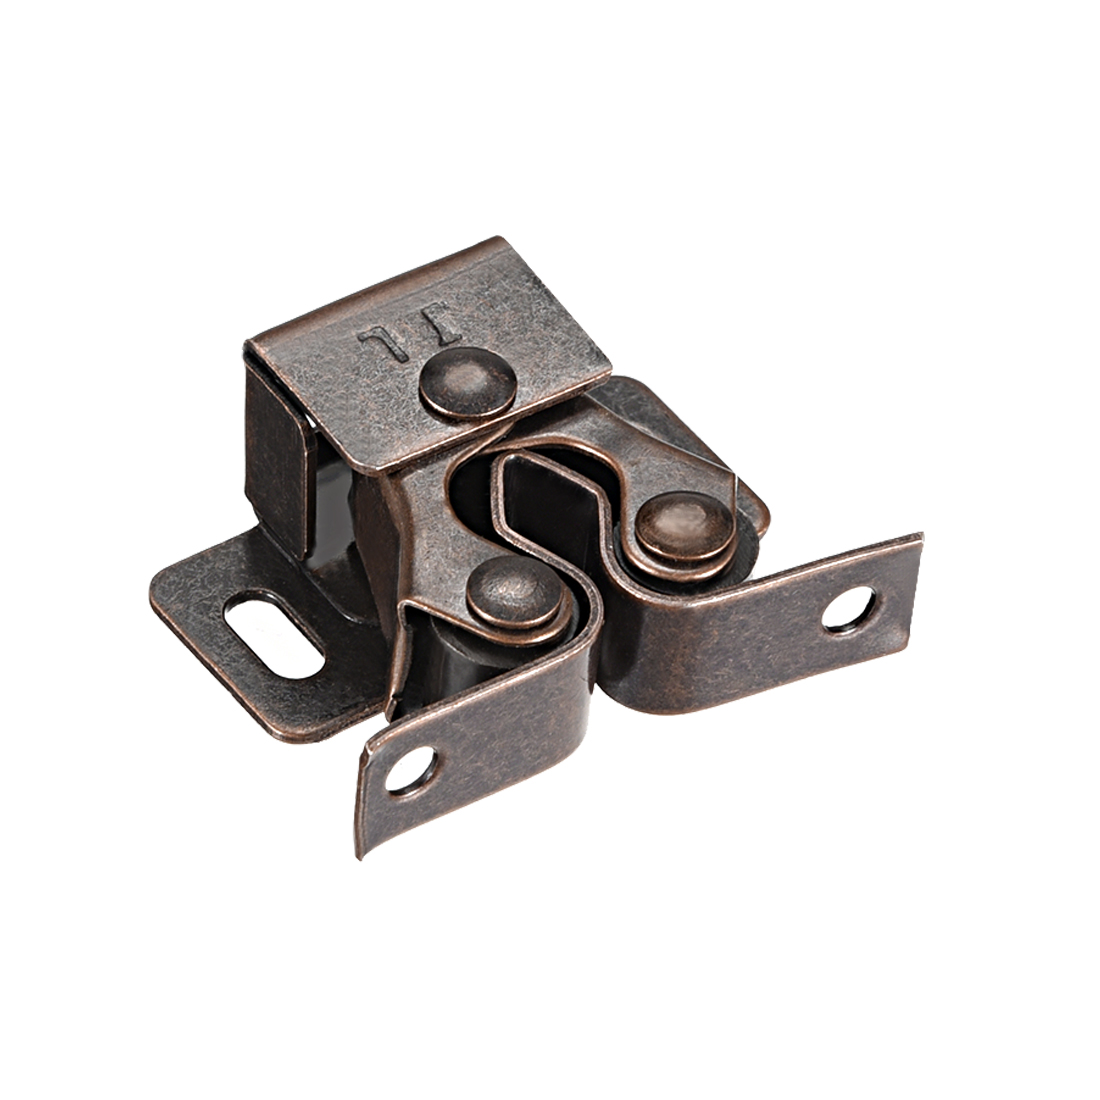 Cabinet Door Double Roller Catch Ball Latch With Prong Coppper Tone 10pcs    Walmart.com